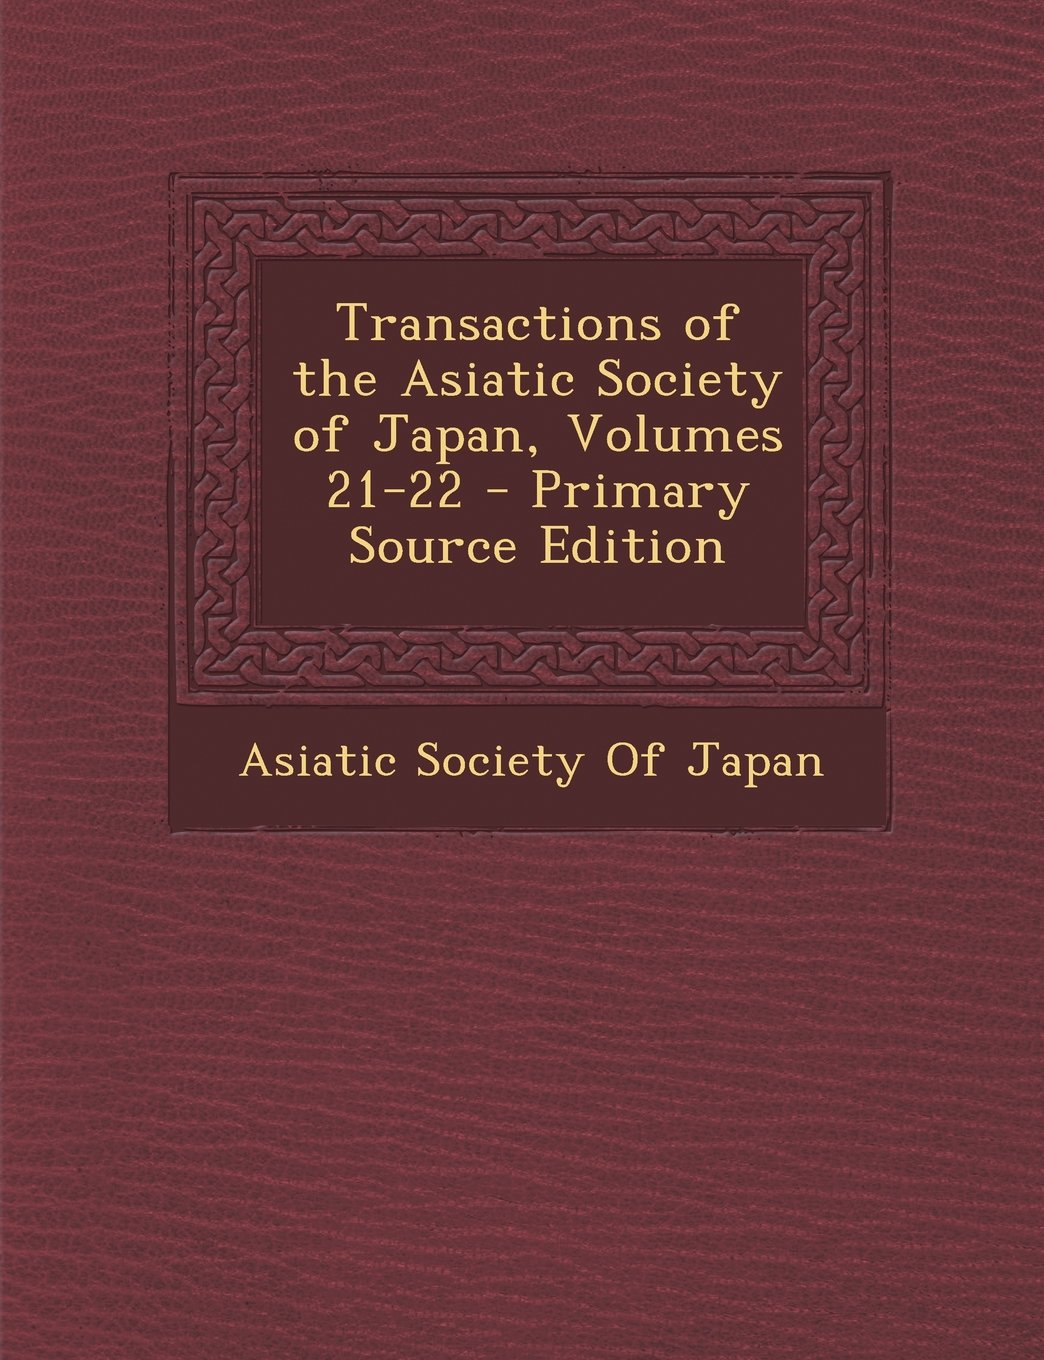 Download Transactions of the Asiatic Society of Japan, Volumes 21-22 PDF